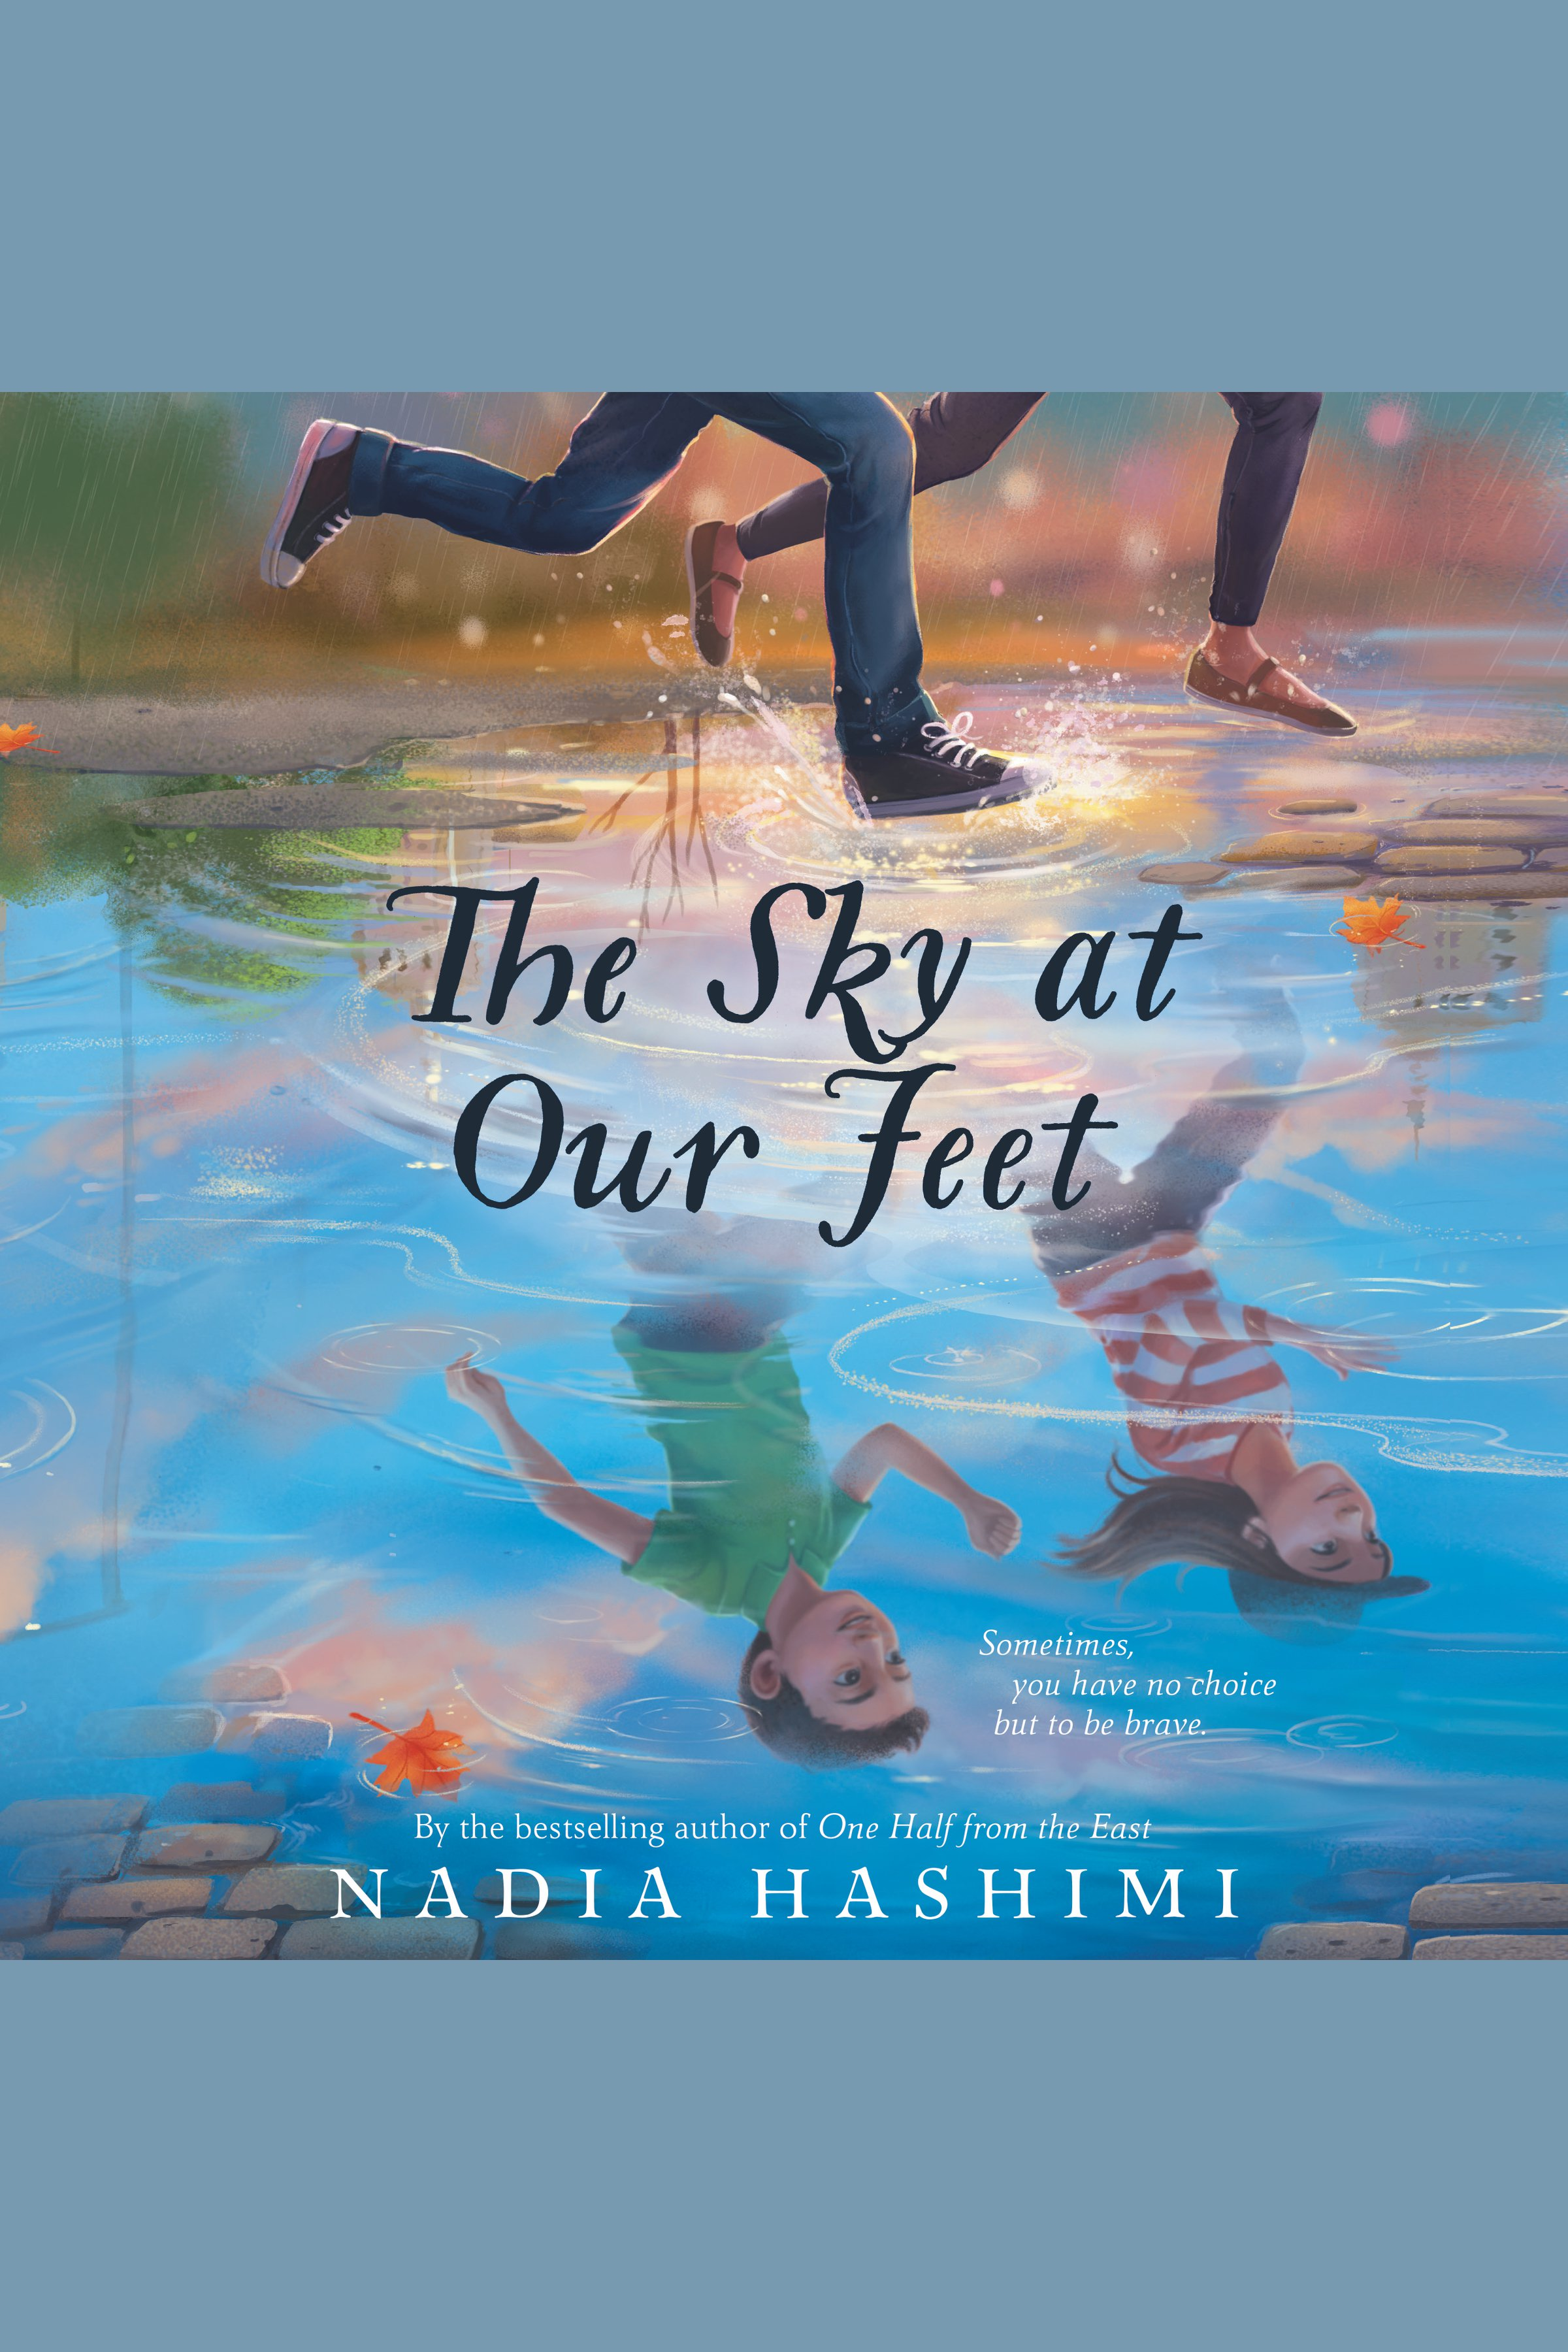 The sky at our feet cover image